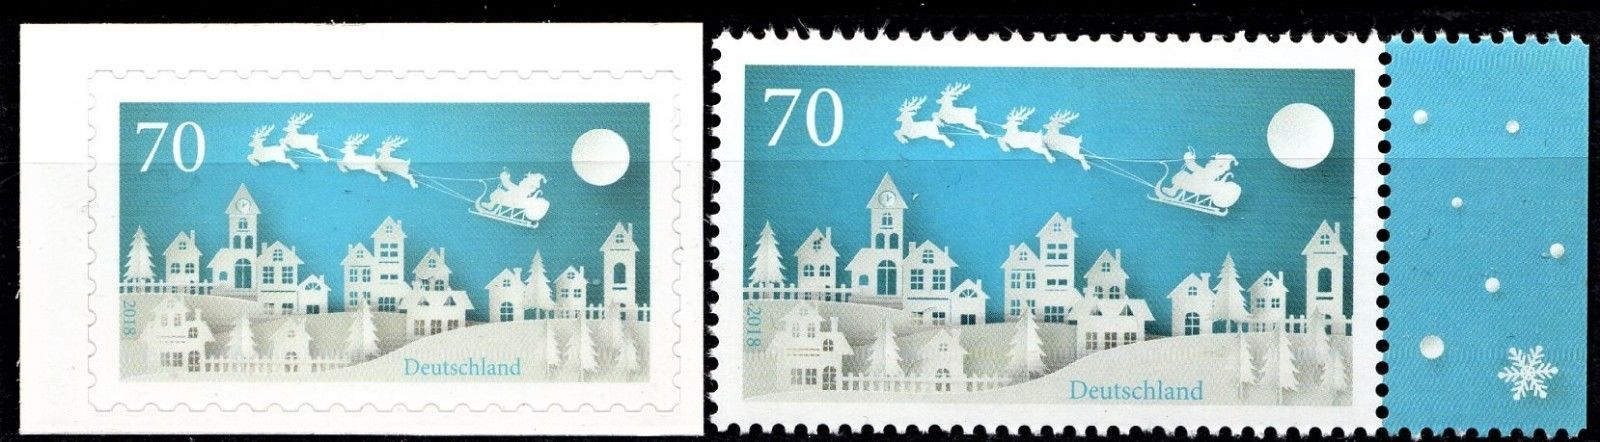 Germany - left: Michel #3423 (2018) self-adhesive and right: Michel #3421 (2018)